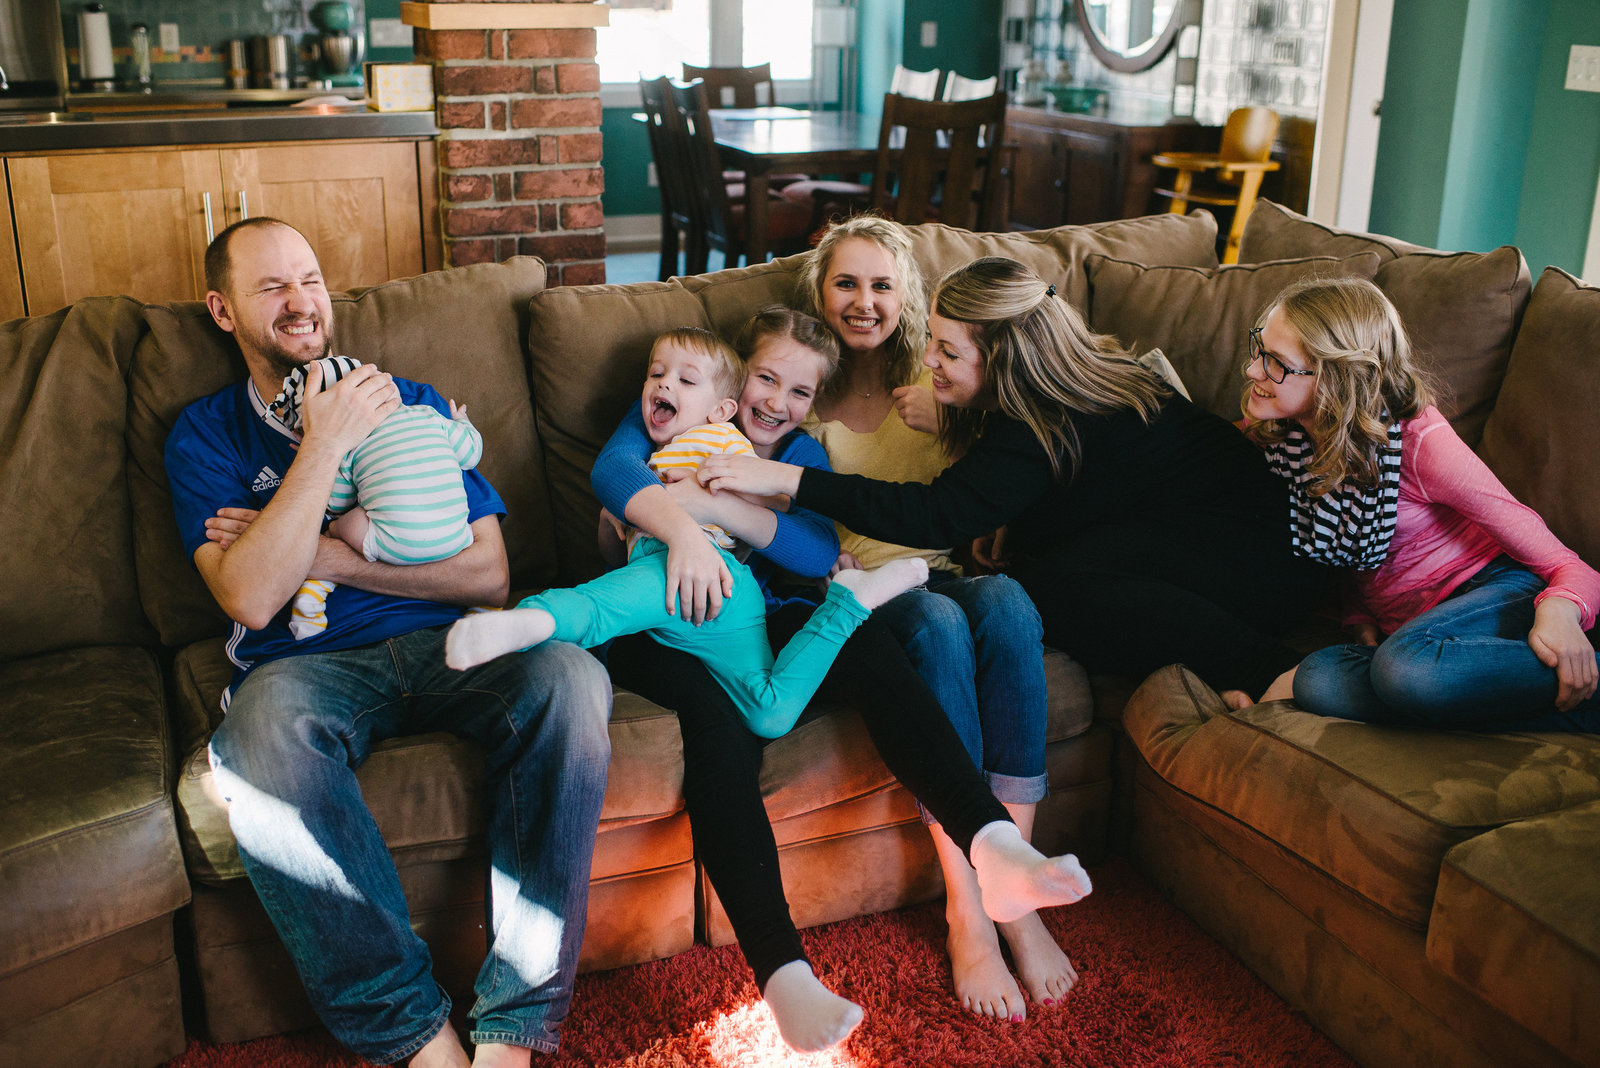 Boardman OH family piled on couch laughing